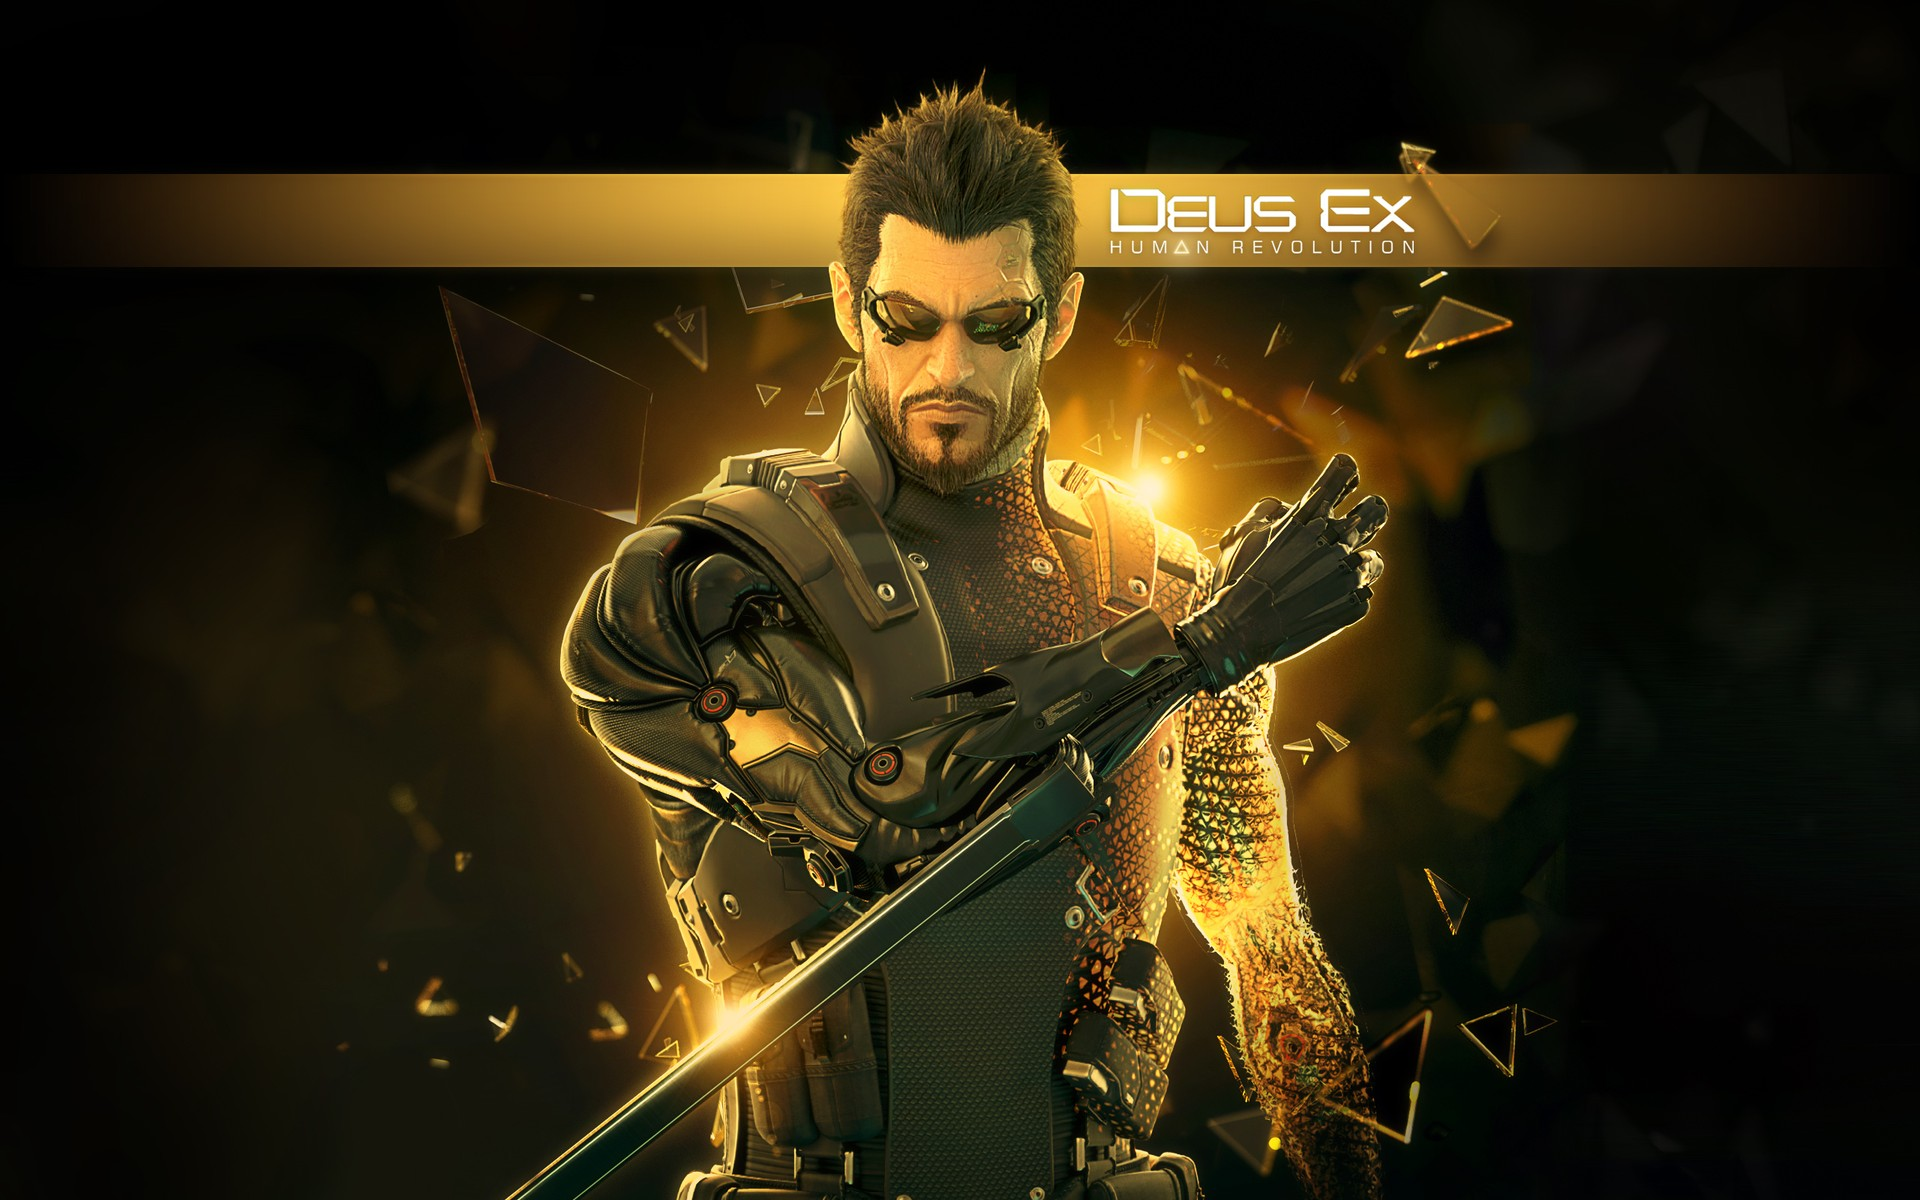 deus ex wallpapers high quality download free